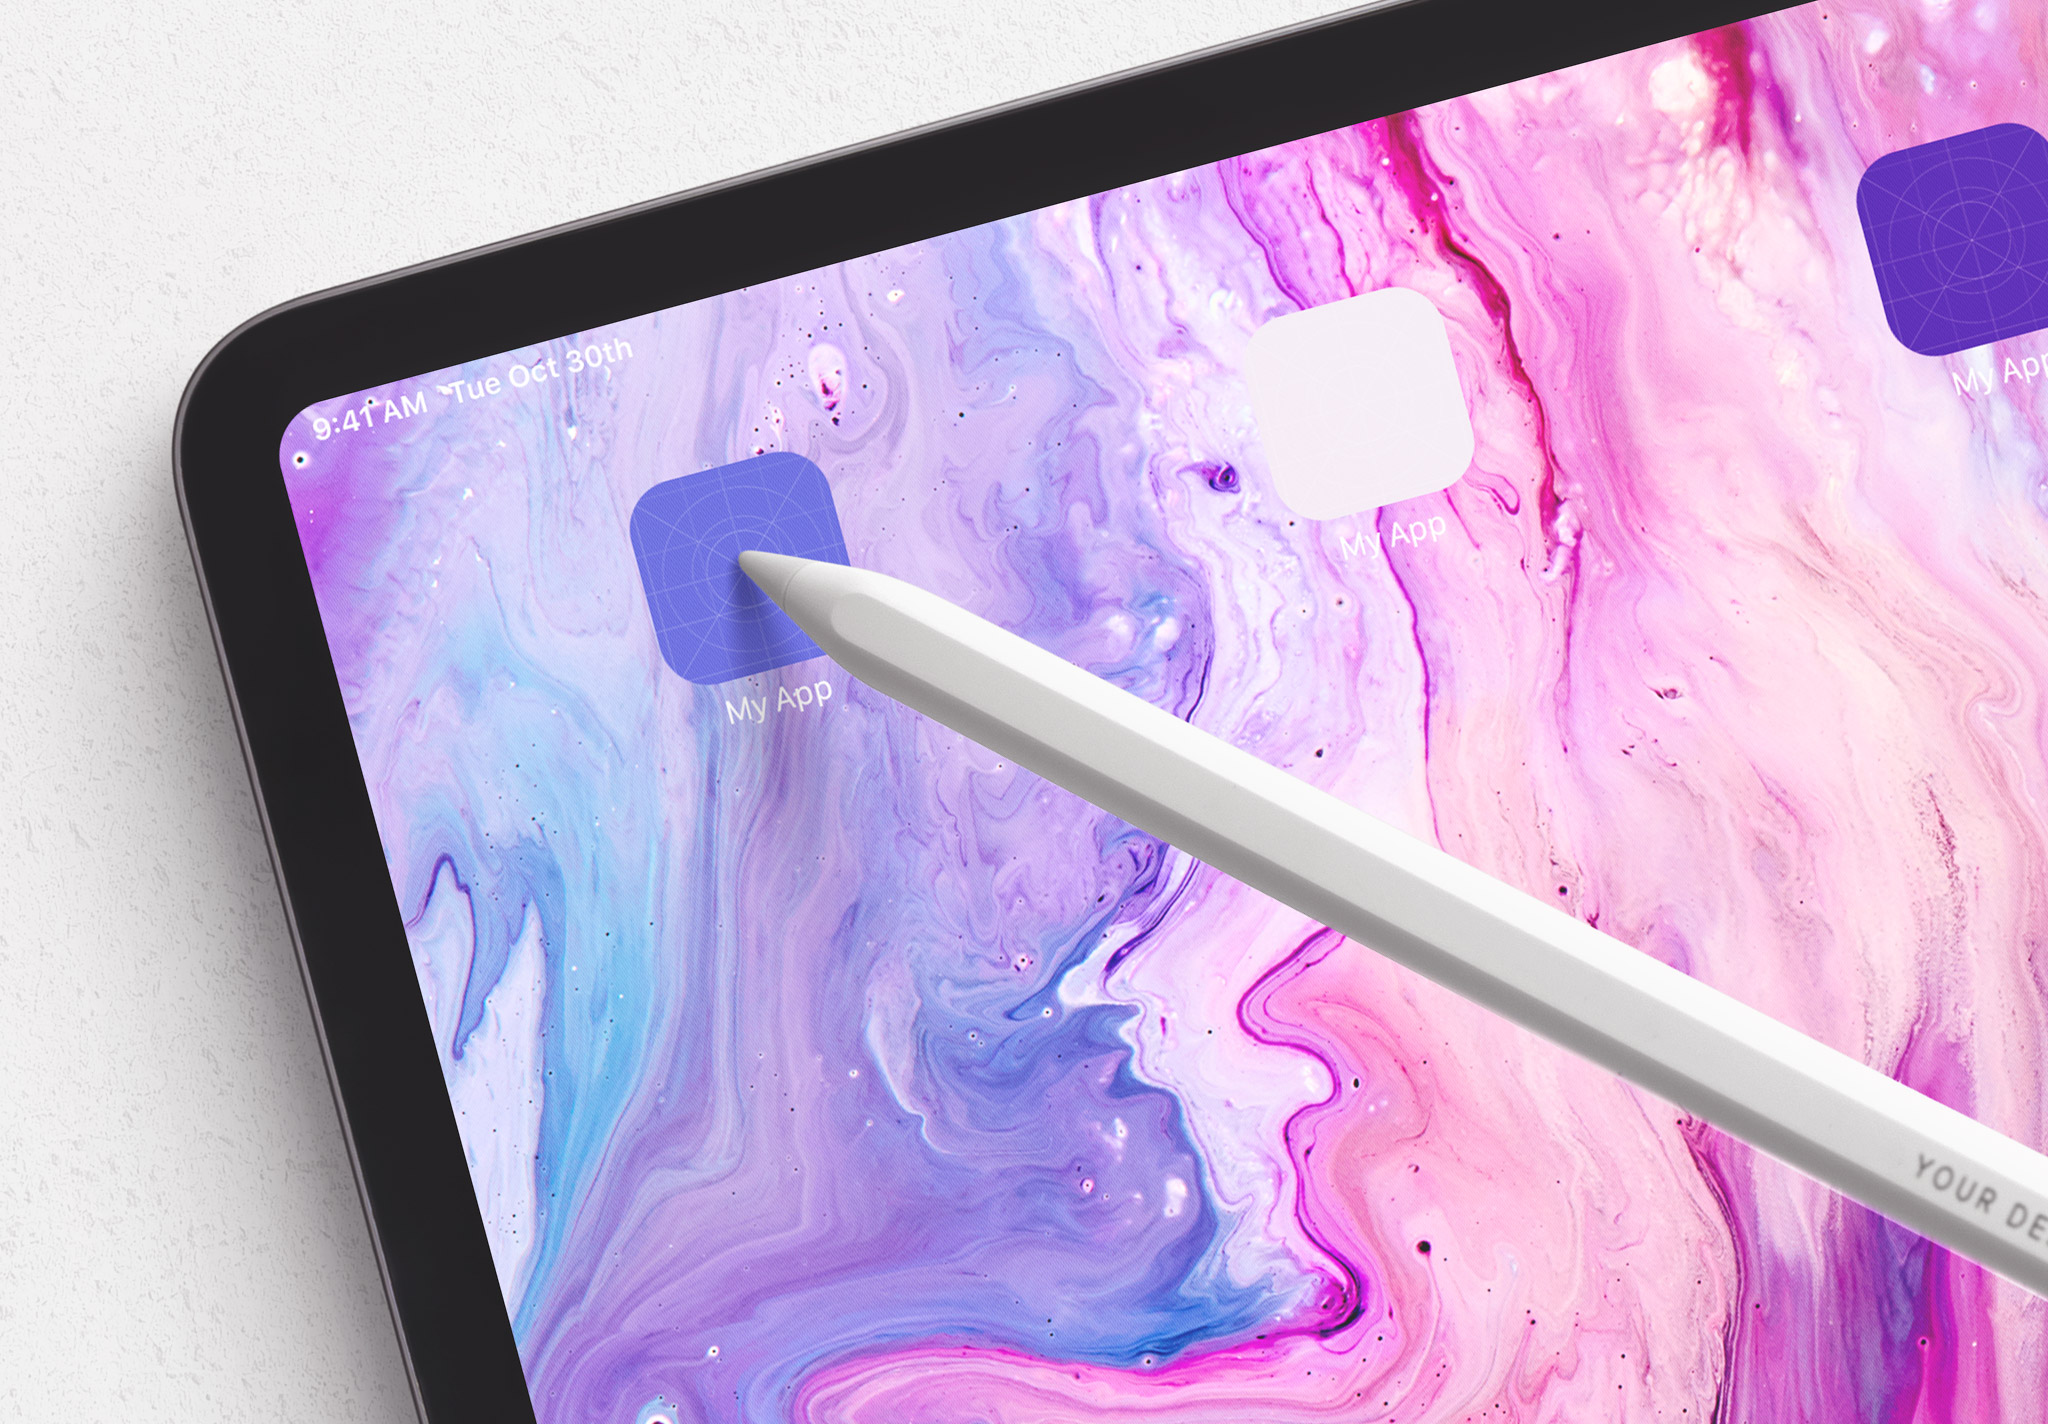 Tablet Pro Mockup with Tilted Pencil Image04